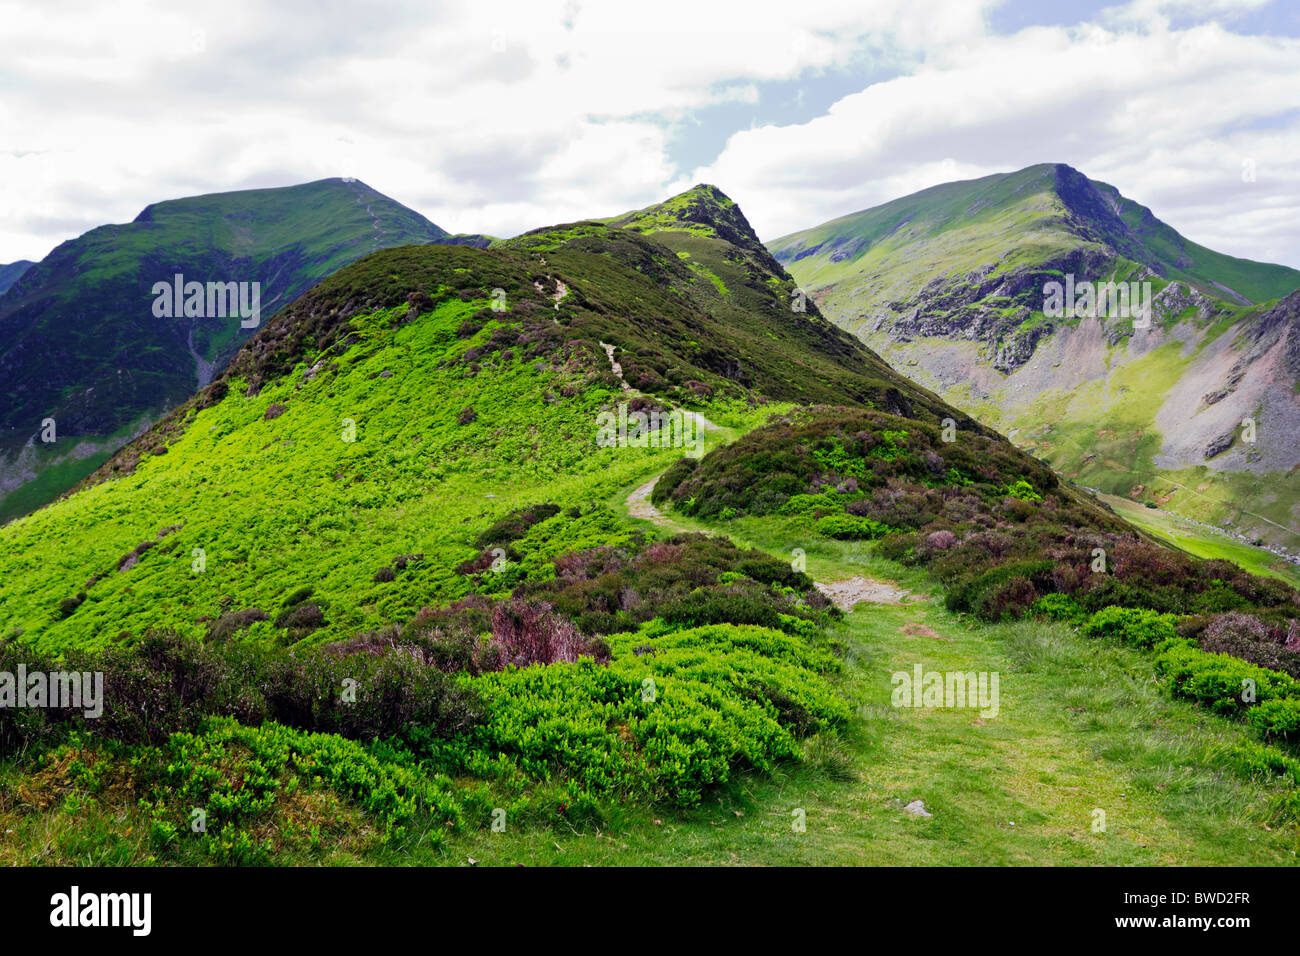 Hindscarth and Scope End in the Lake District national park, Cumbria, England, UK. - Stock Image